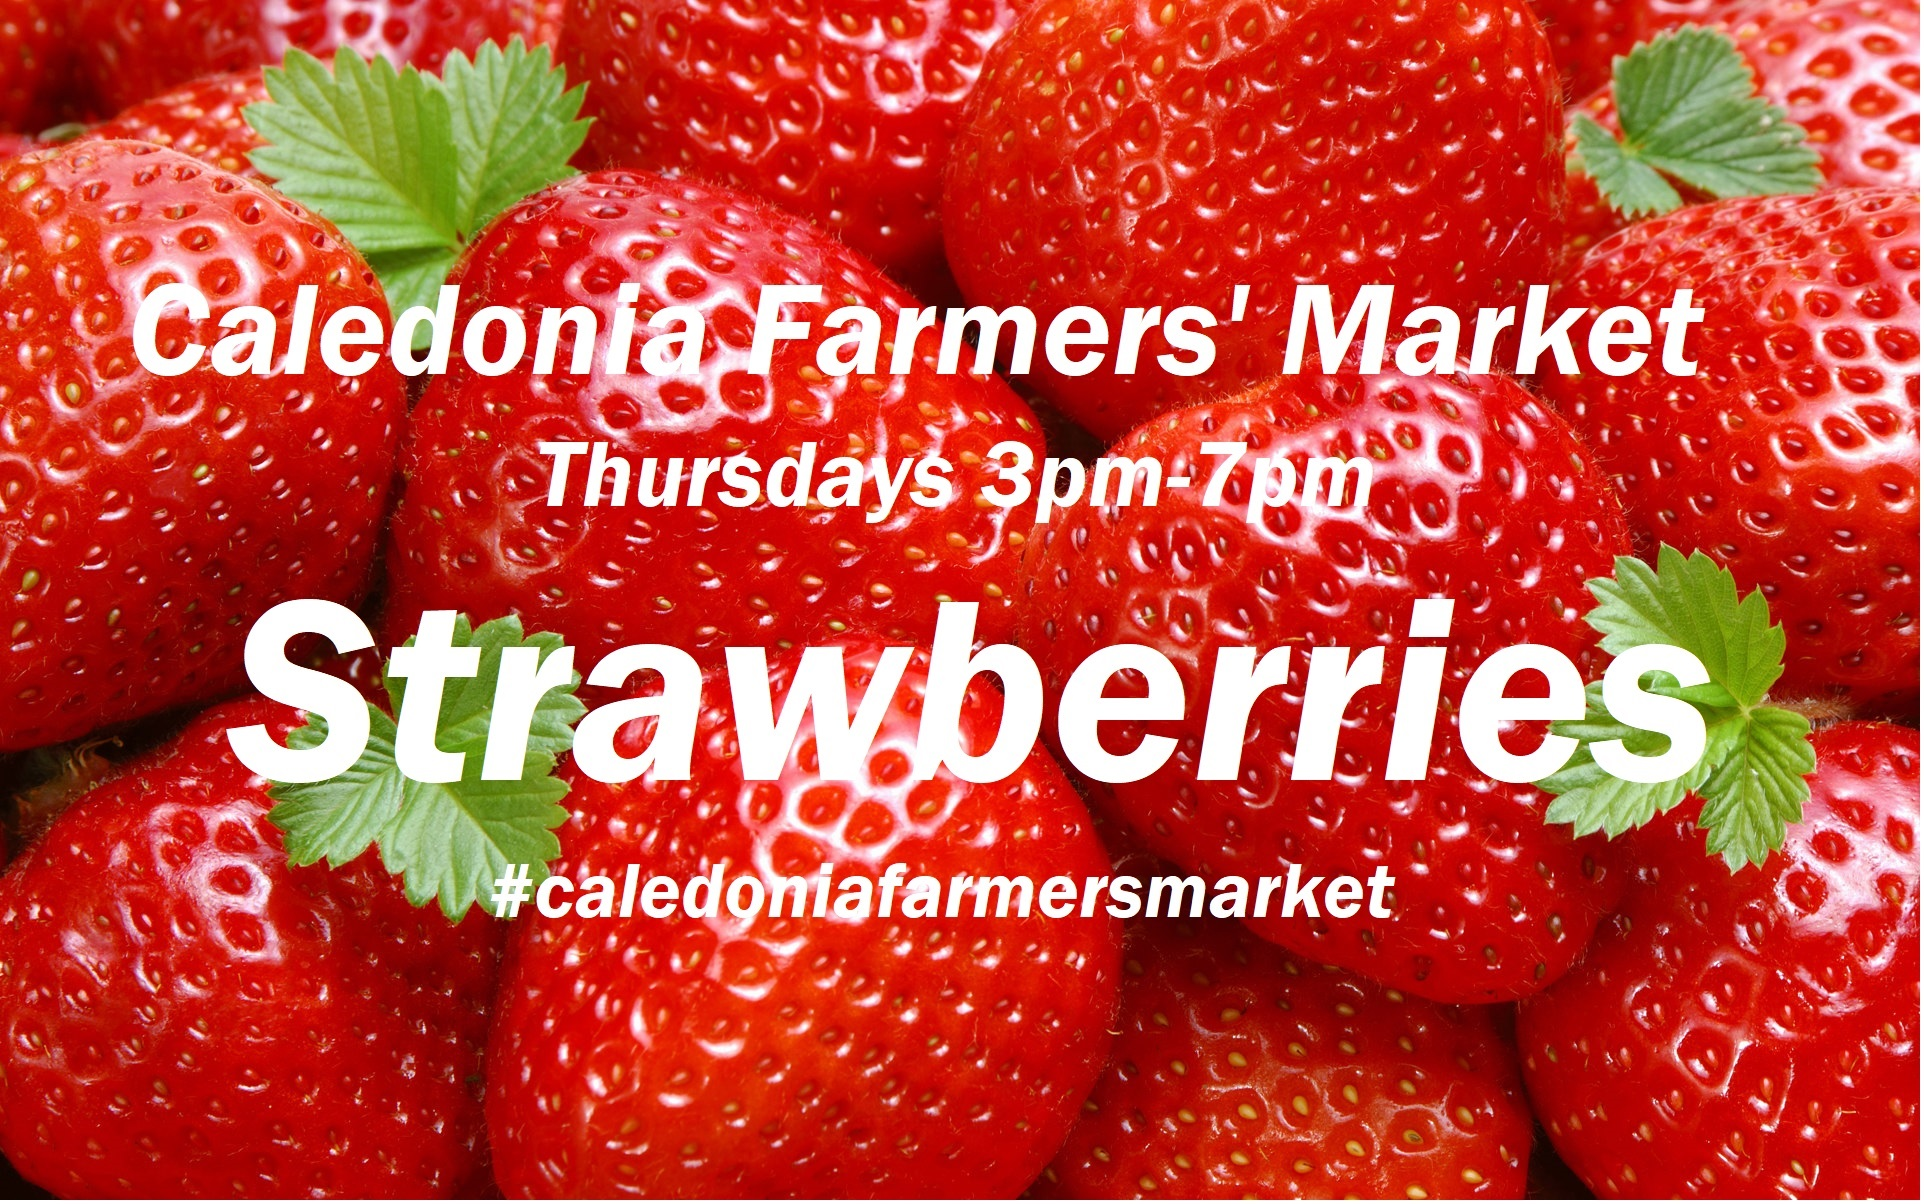 Caledonia FM strawberries